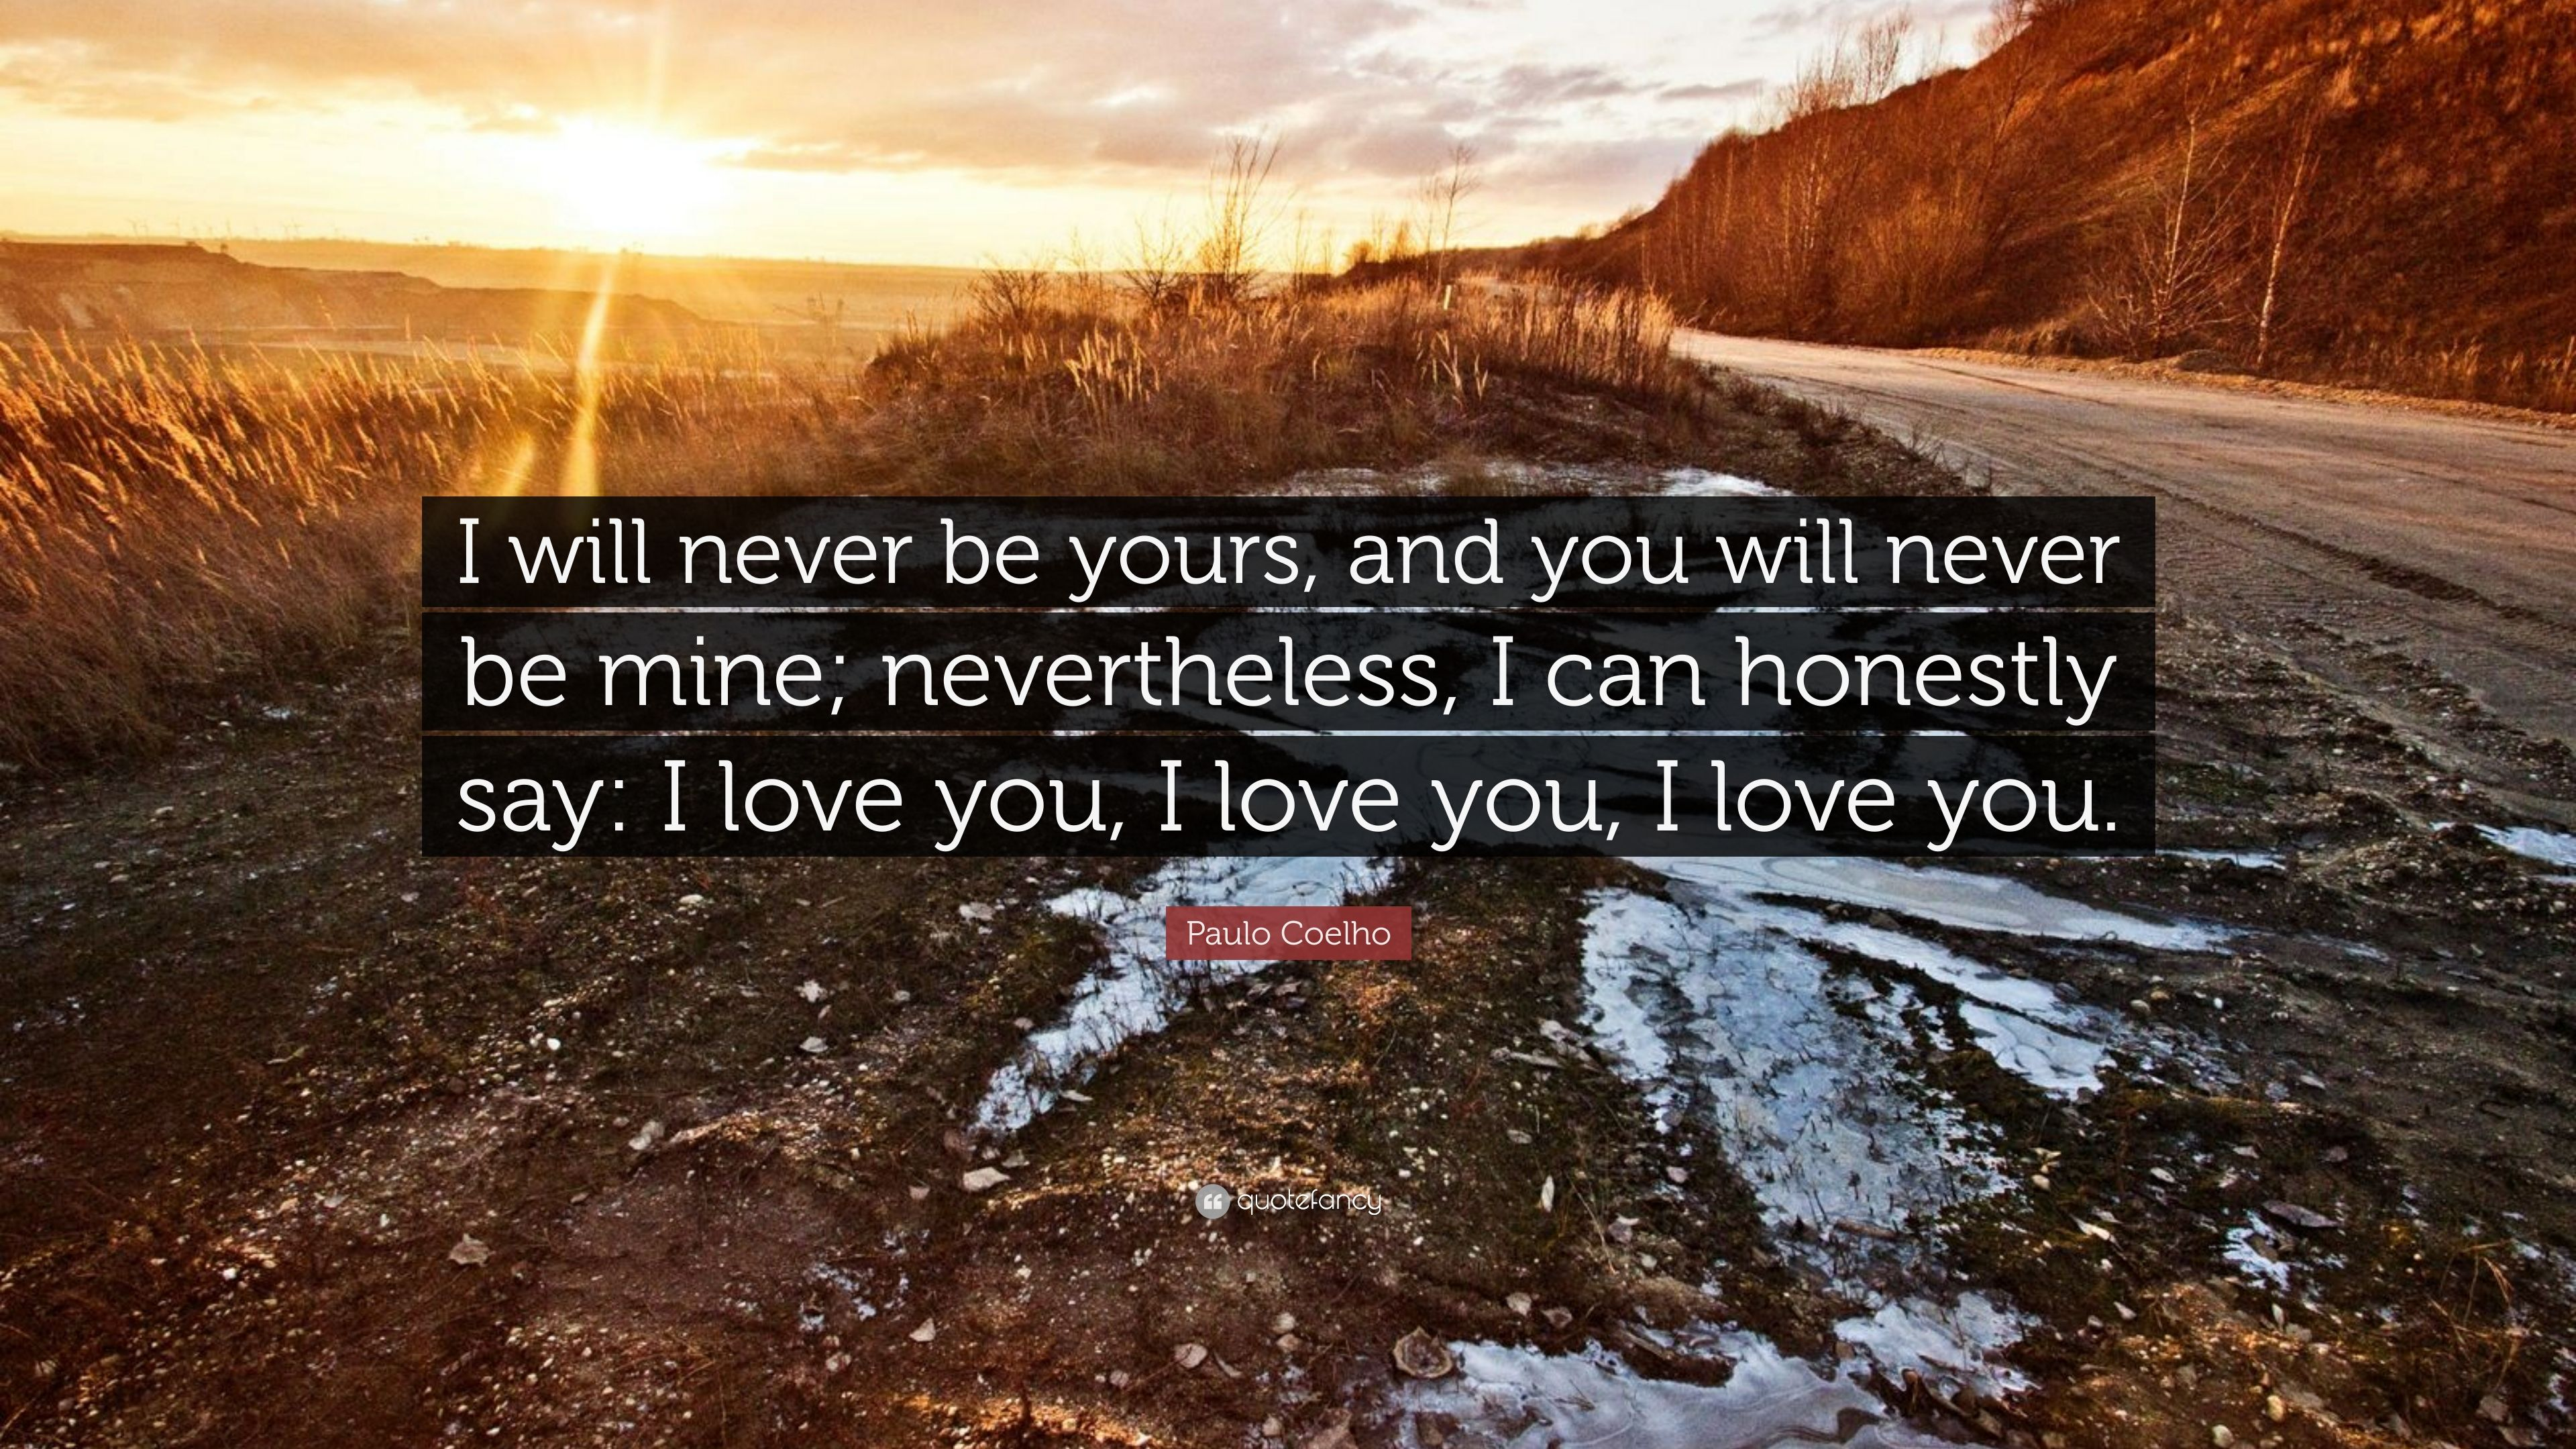 You have never been mine, and I have never been yours